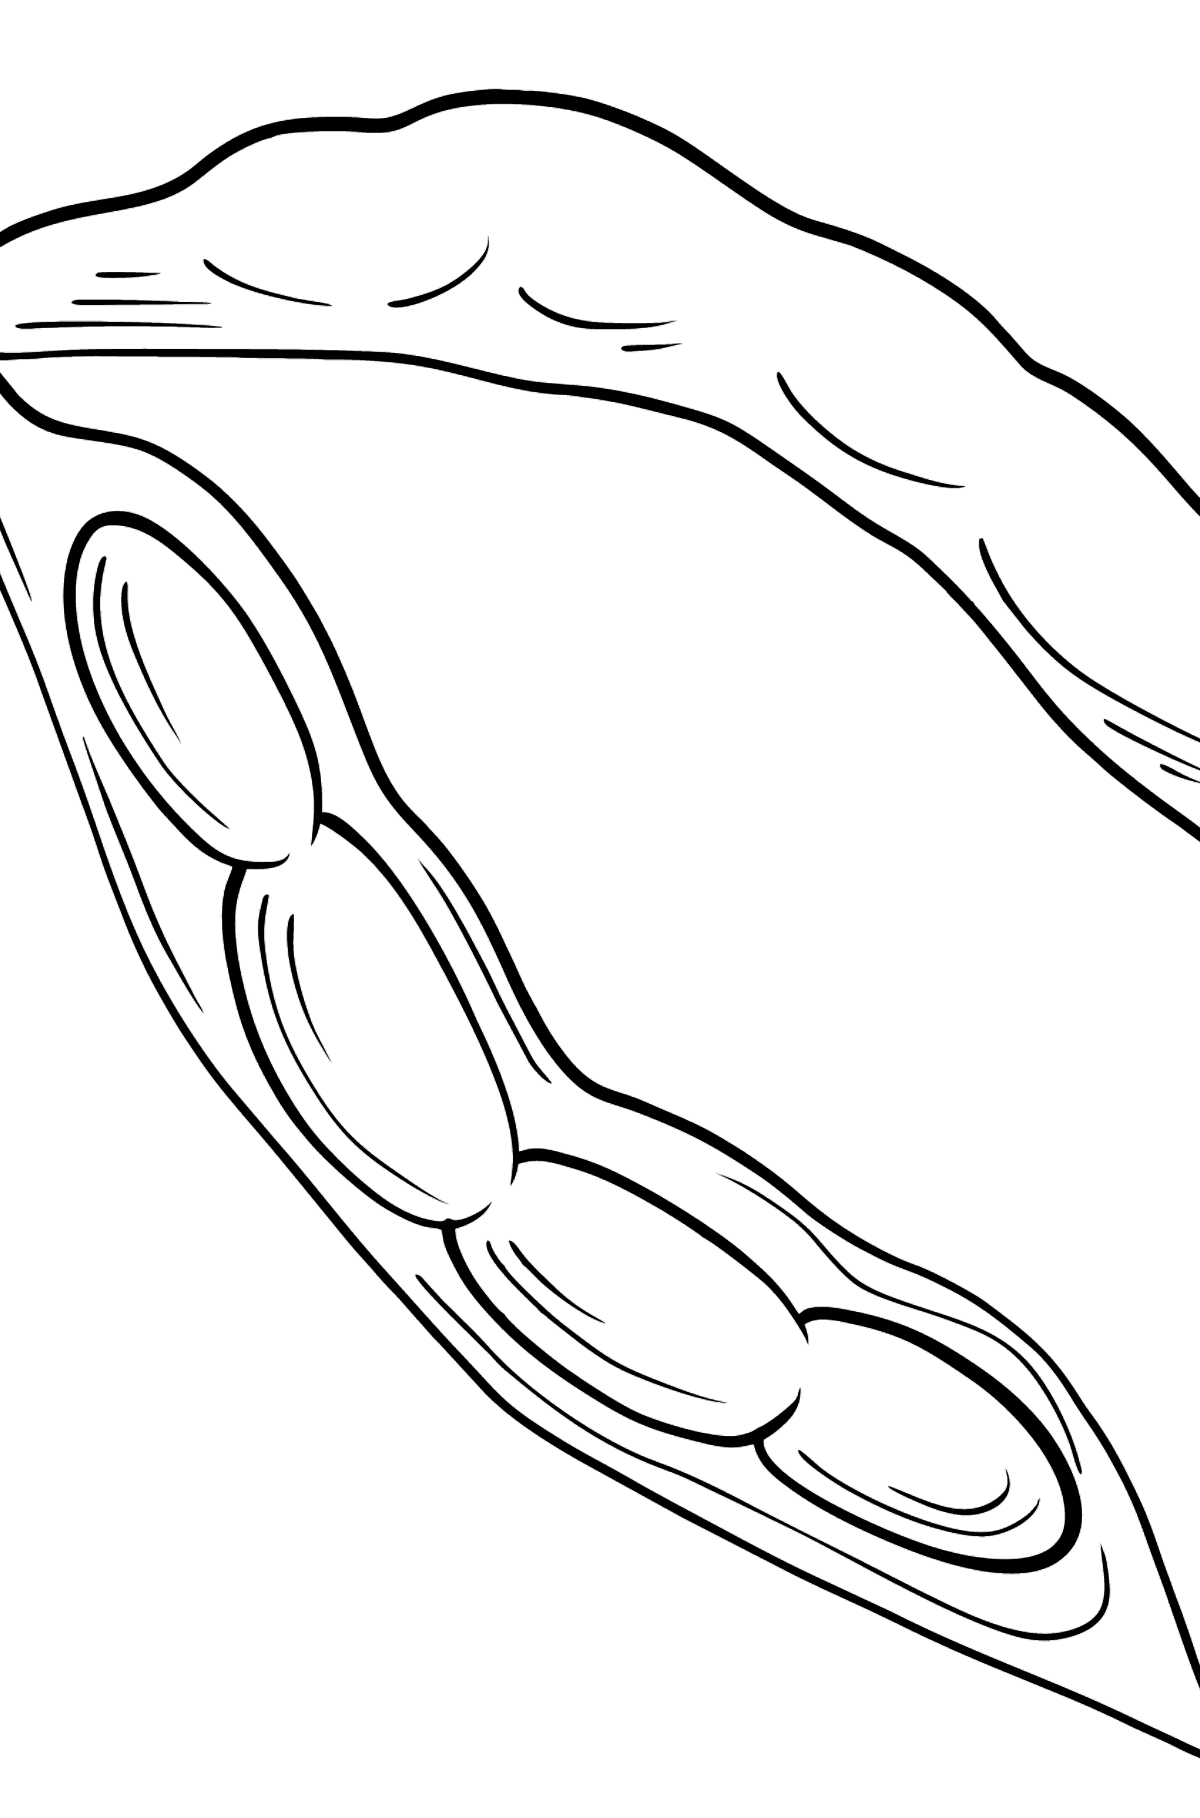 Beans coloring page - Coloring Pages for Kids